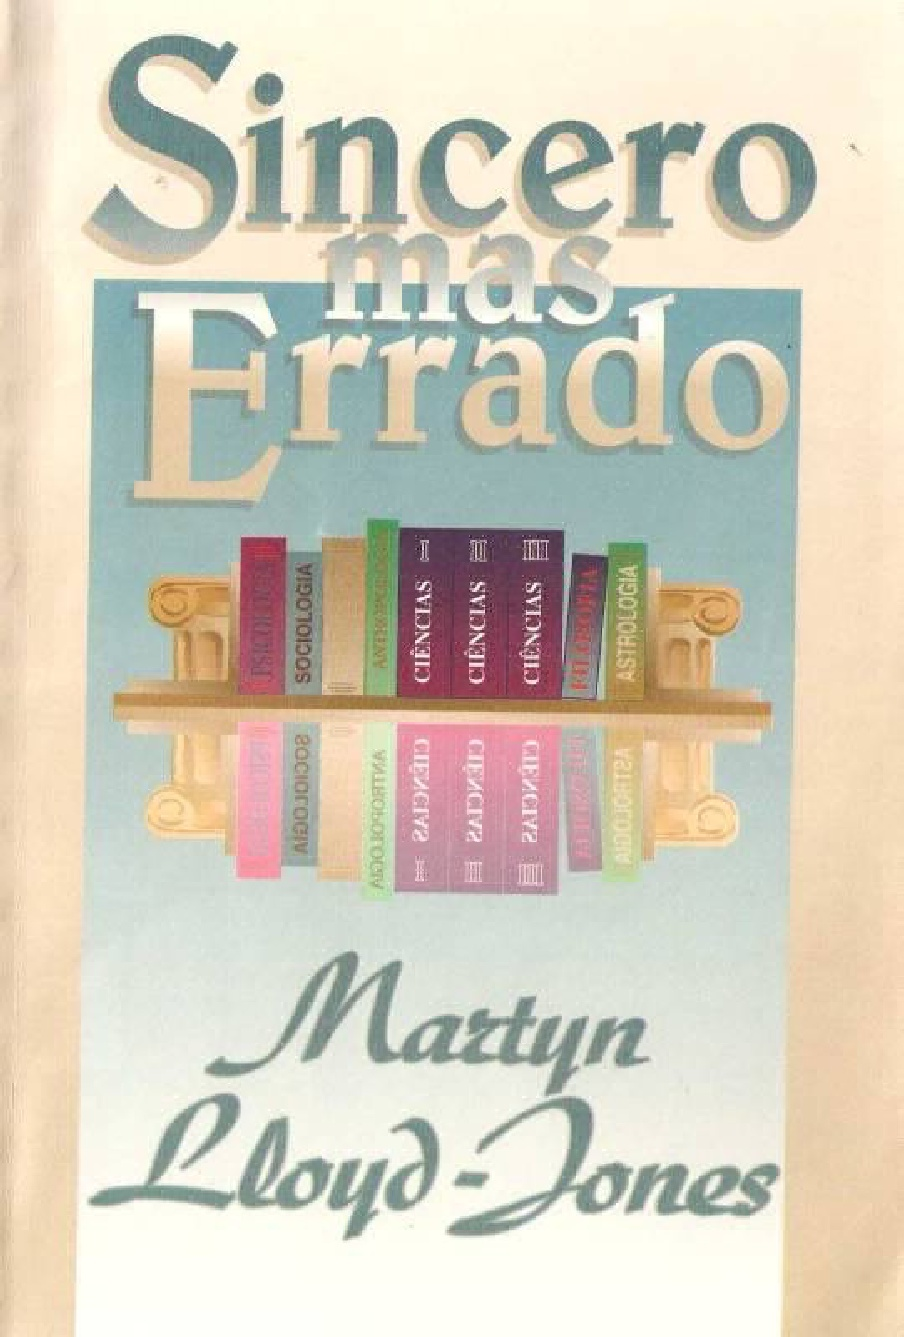 D. Martyn Lloyd-Jones-Sincero Mas Errado-